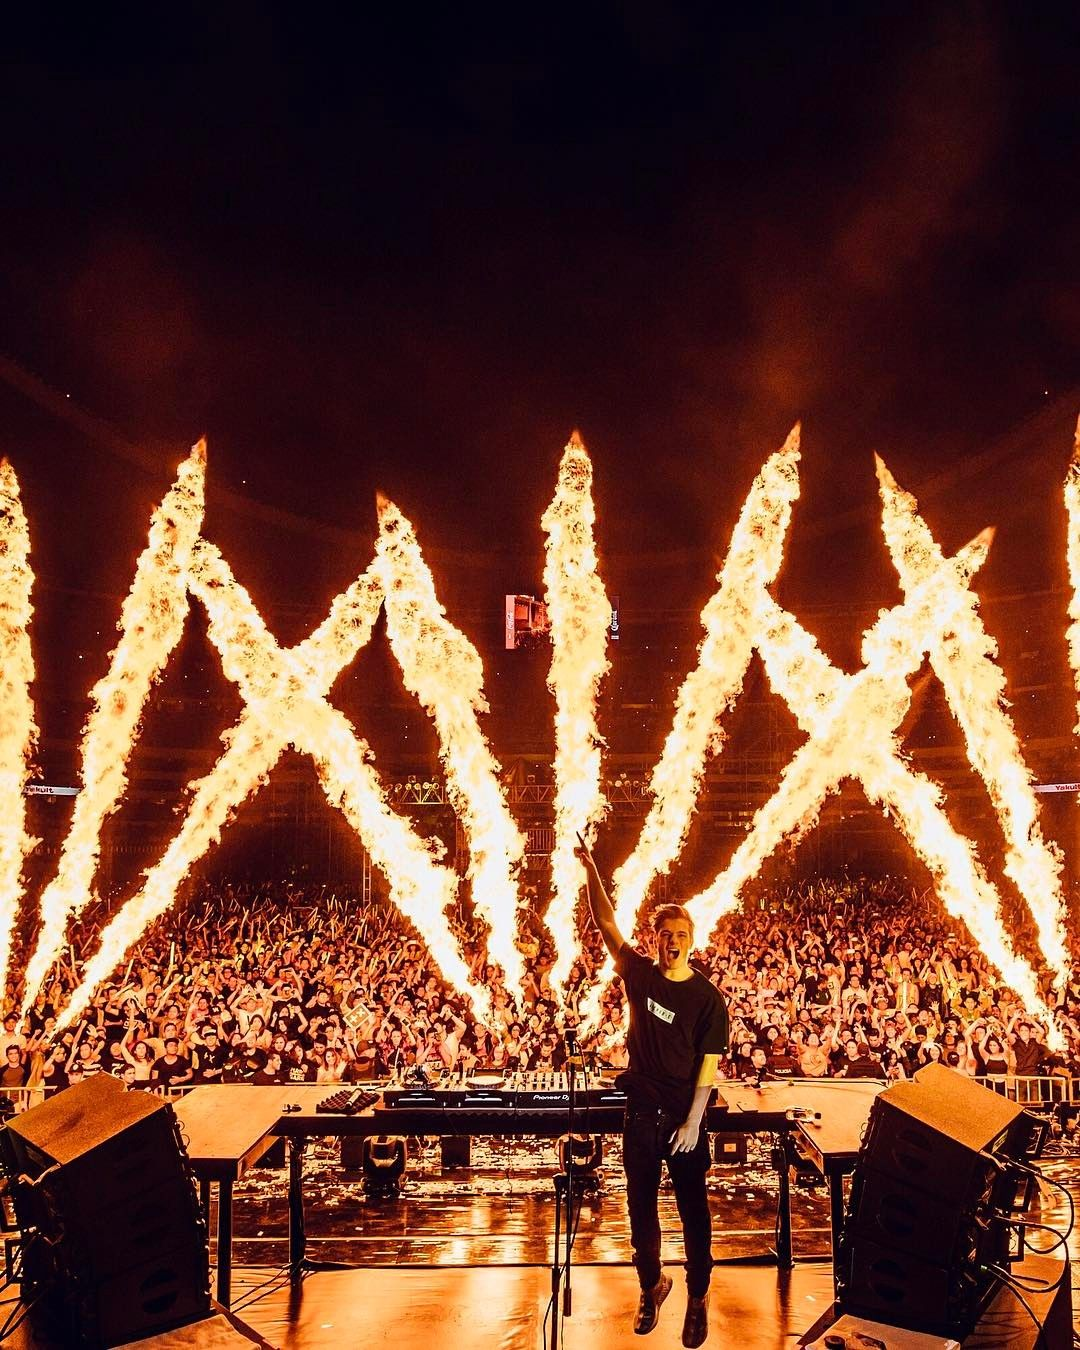 Wallpaper iphone edm -  Fuego Martin Garrix Set The Stage On Fire In Mexico City Louis